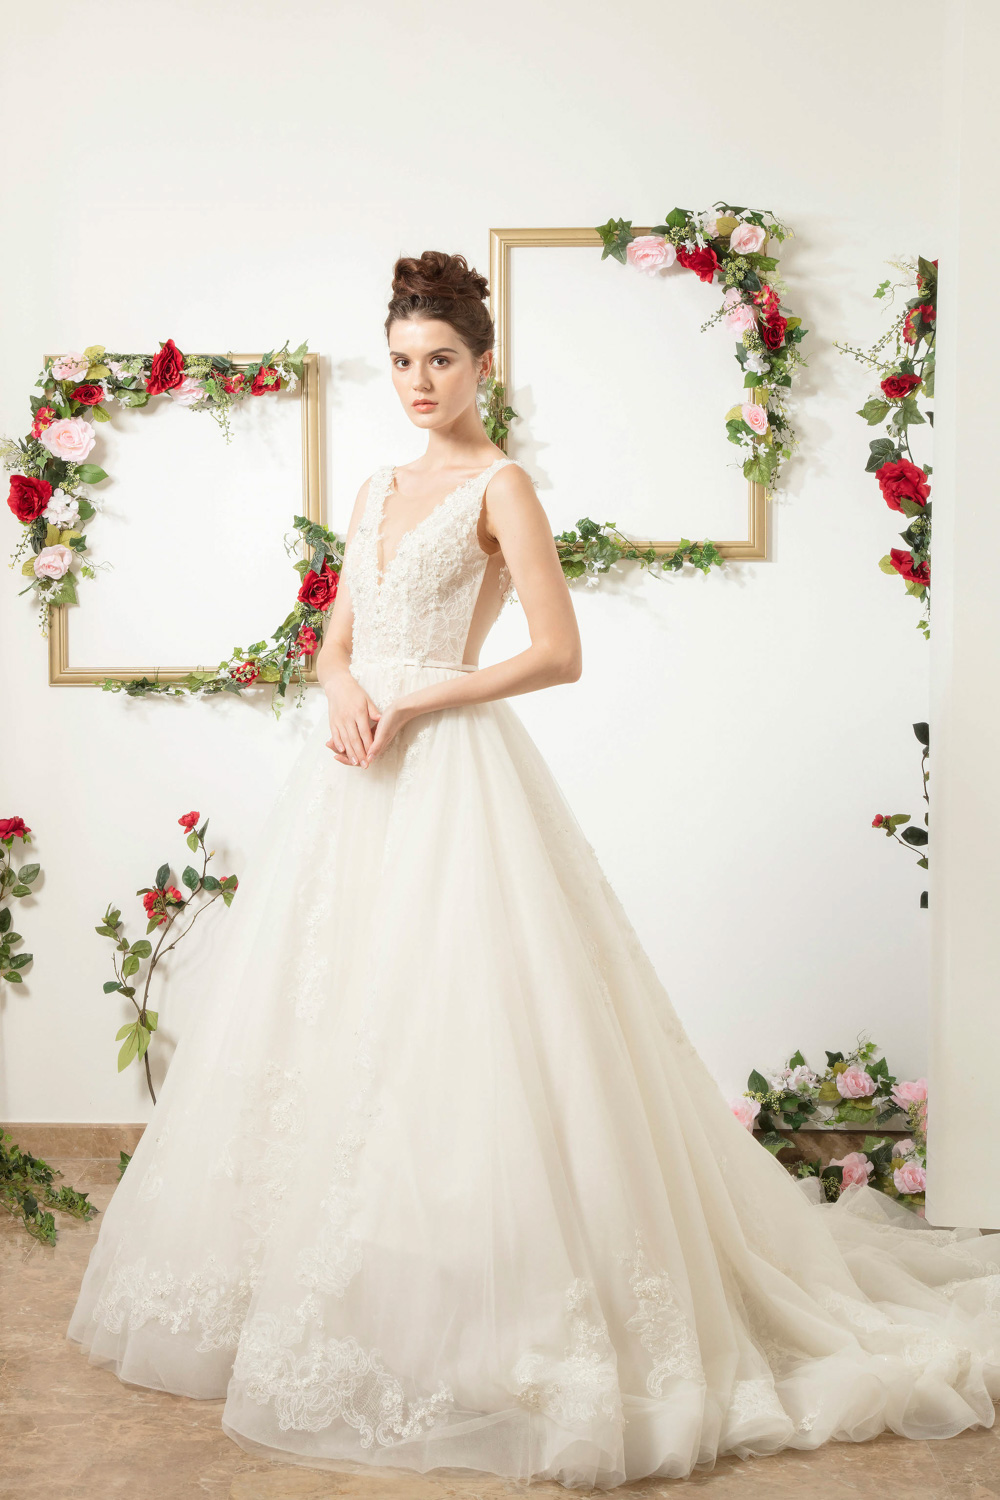 Wedding dress with illusion plunging neckline by CCM Wedding